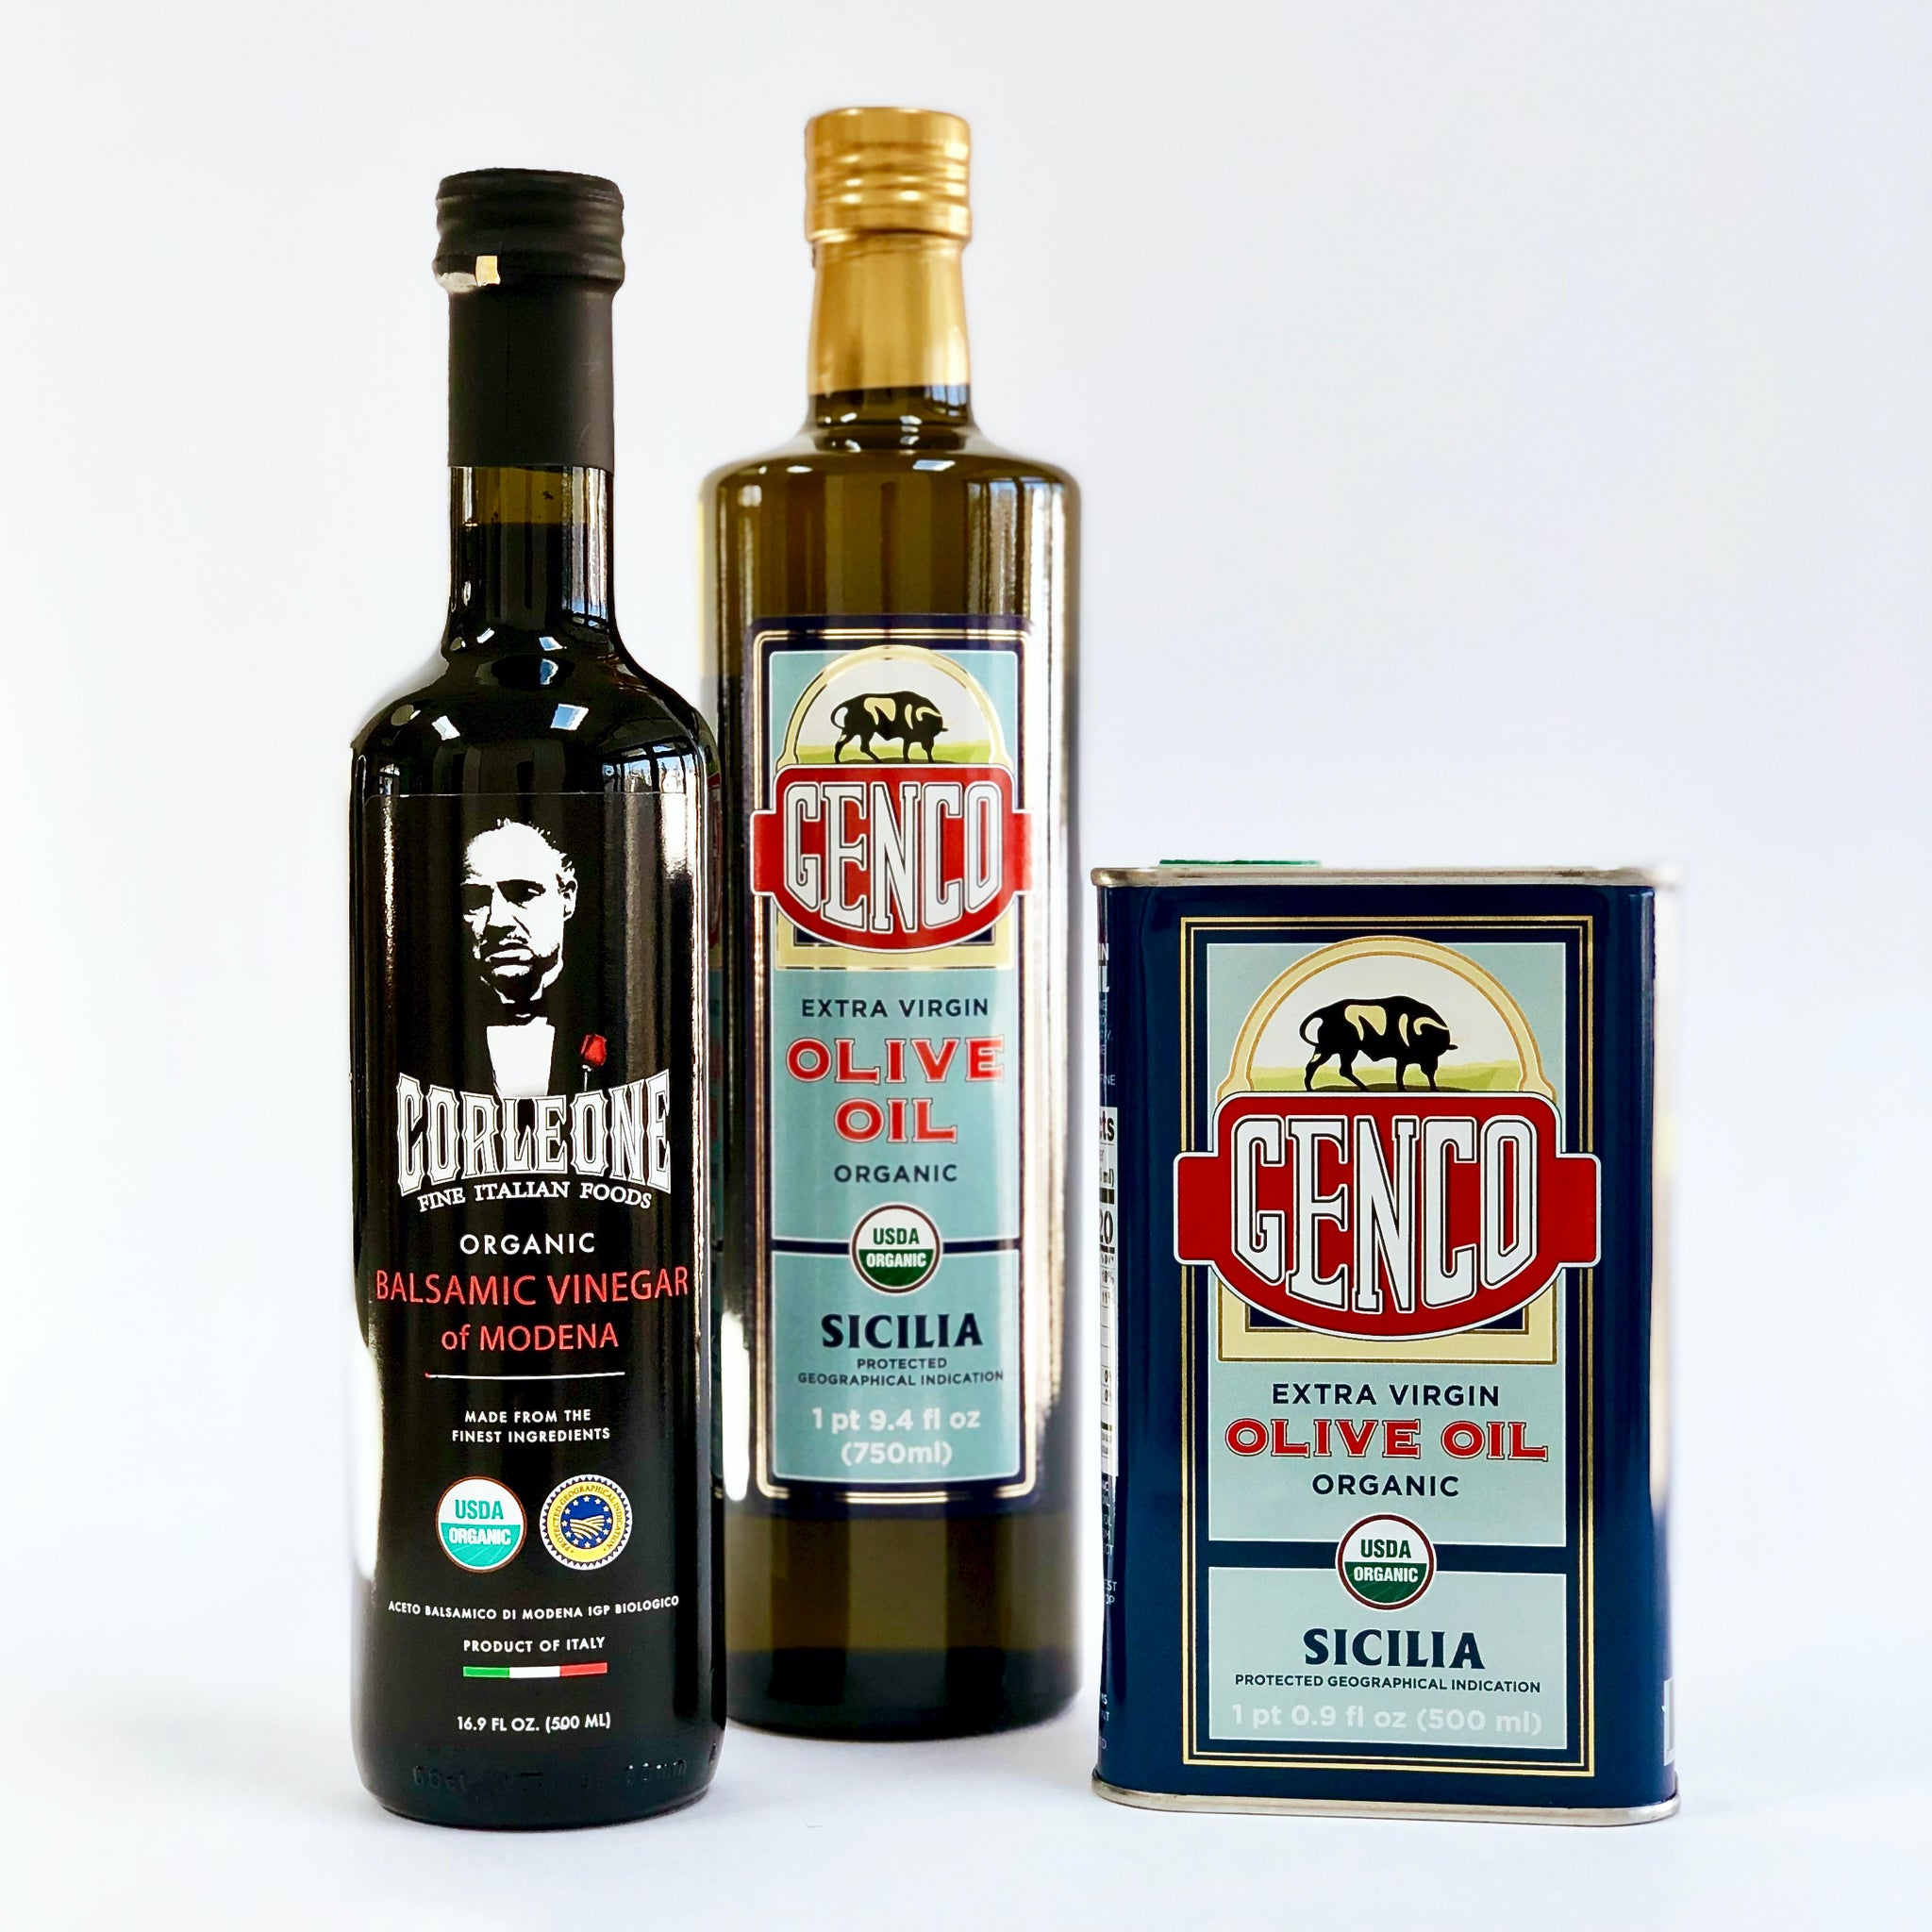 Corleone Fine Italian Foods bottle of balsamic vinegar and bottle and can of Genco olive oil